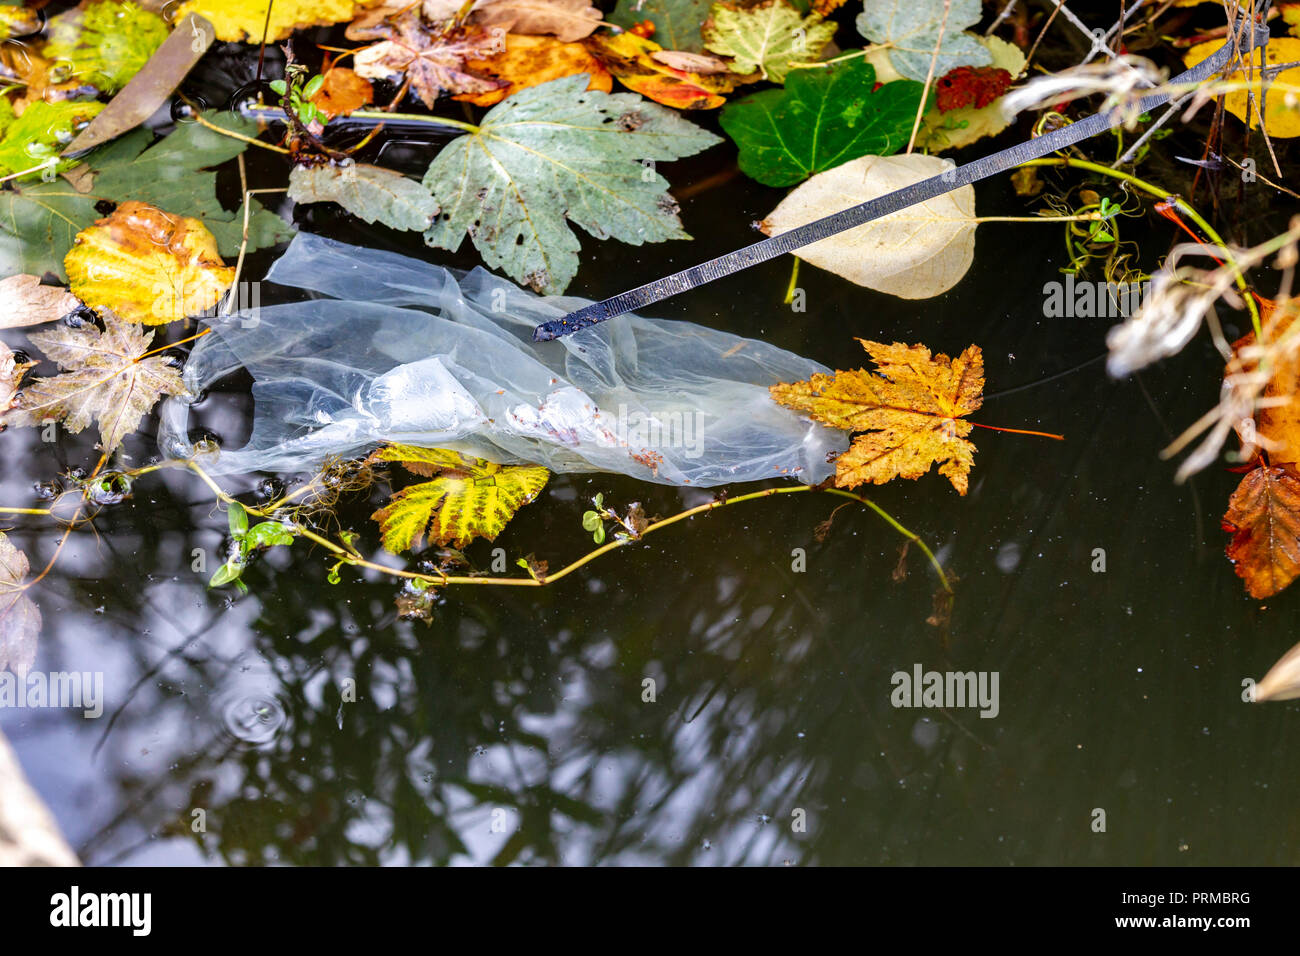 Northampton. U.K.3rd October 2018,  Food and drink waste thrown on the ground and in the park lake, photos taken on a 20min walk in the park. - Stock Image